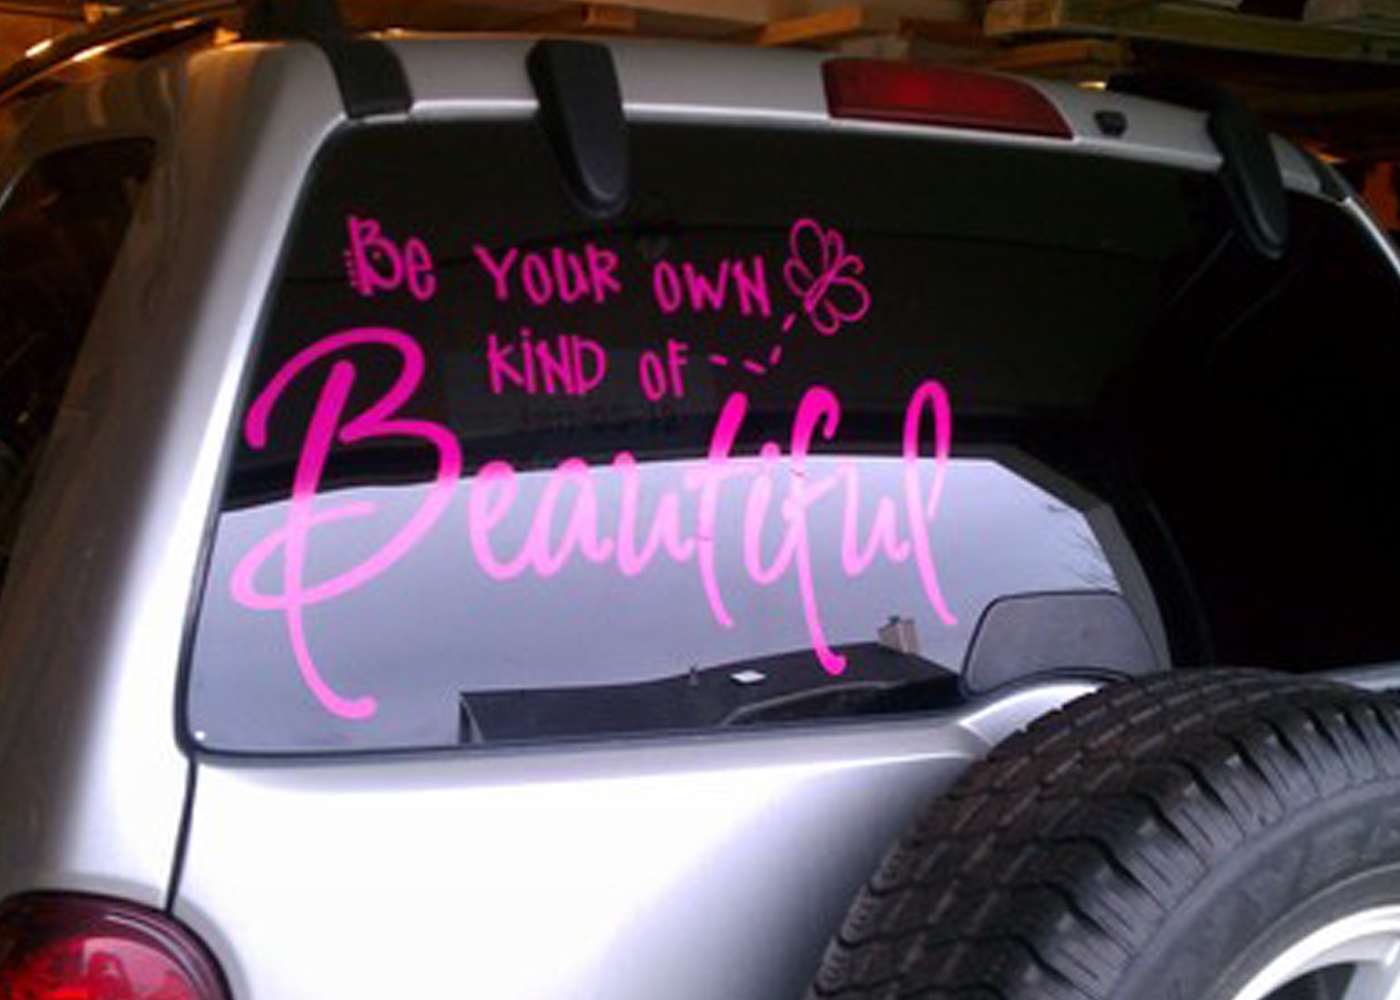 hot-be-beautiful-vinyl-decal-on-vehicle.jpg